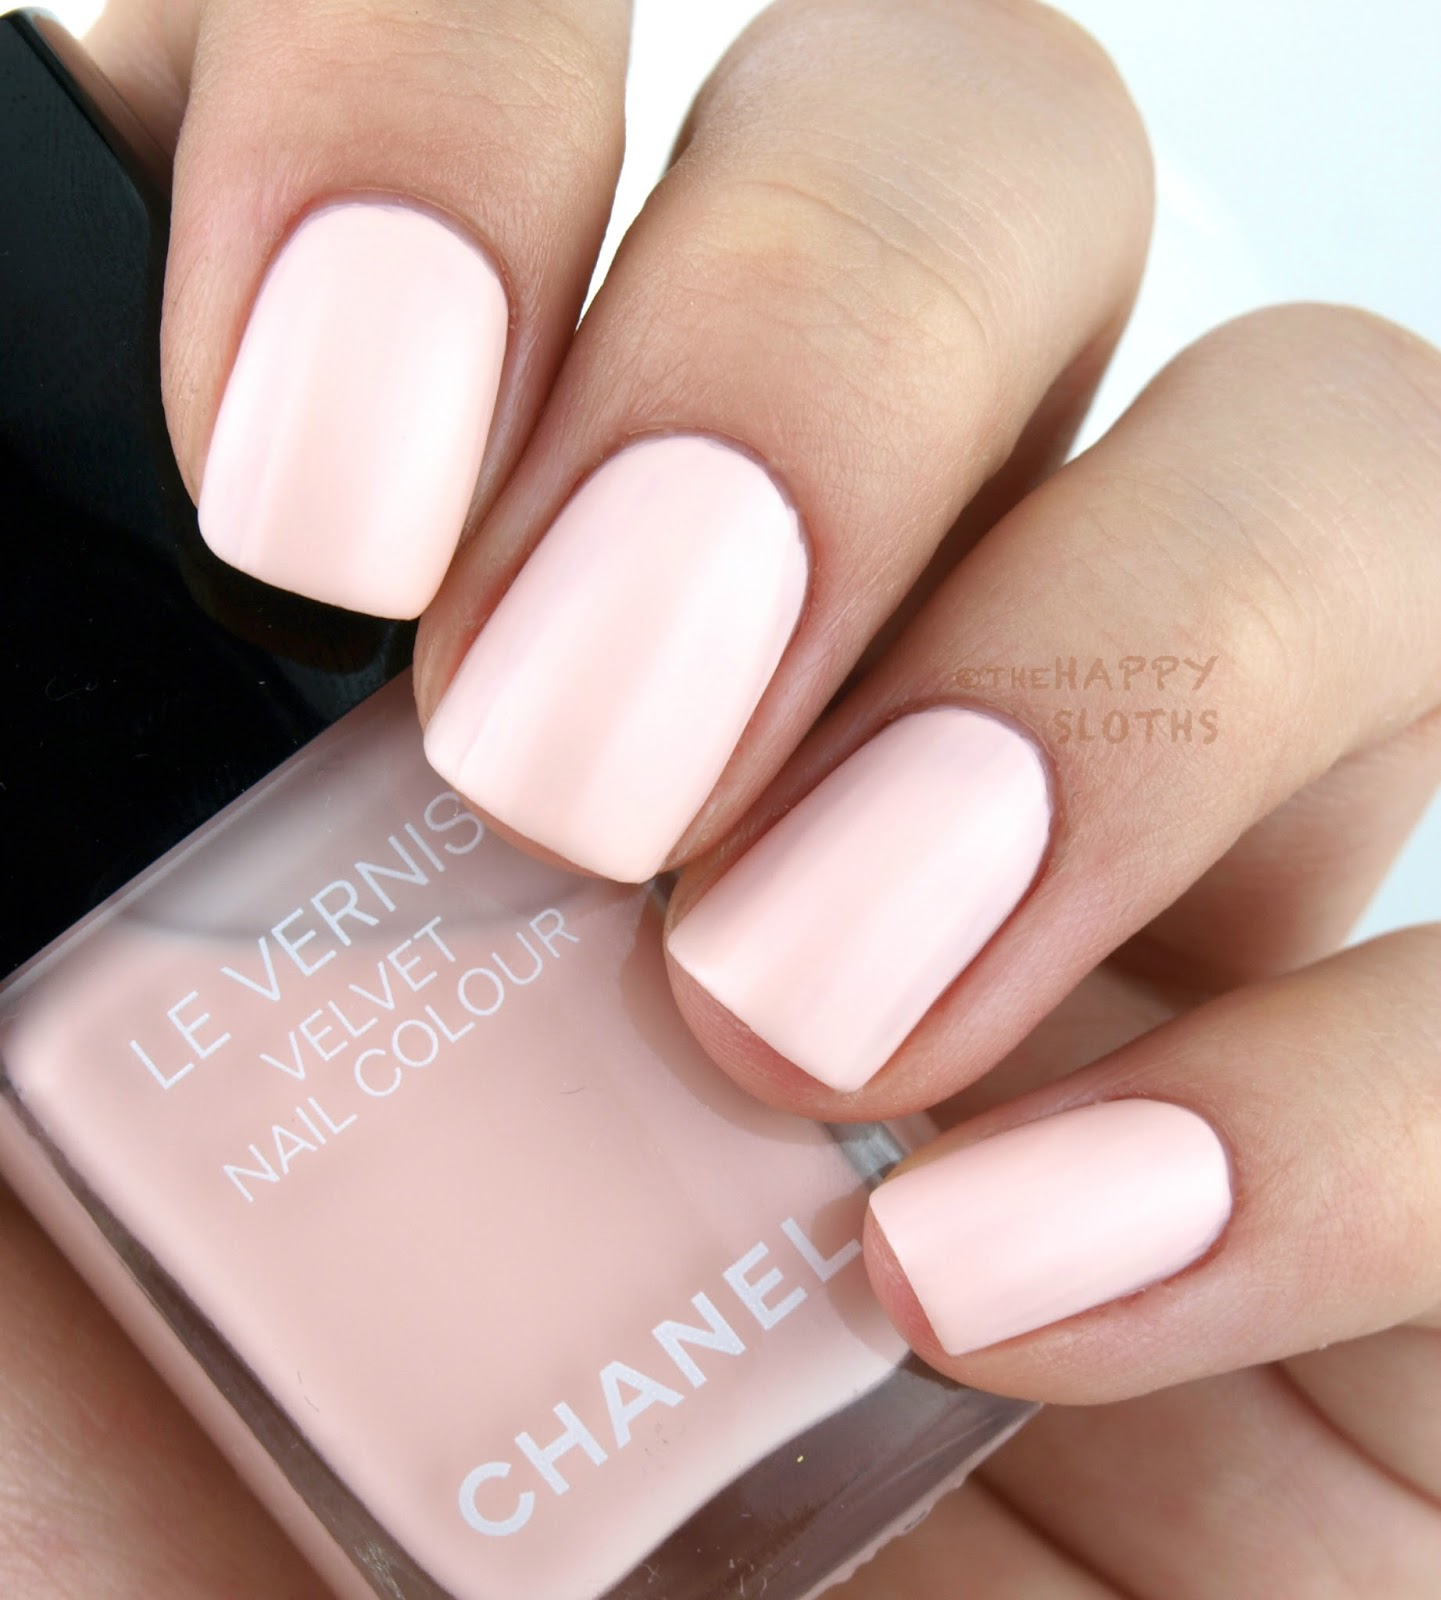 Chanel Holiday 2016 Collection Le Vernis Velvet Pink Rubber Review Swatches